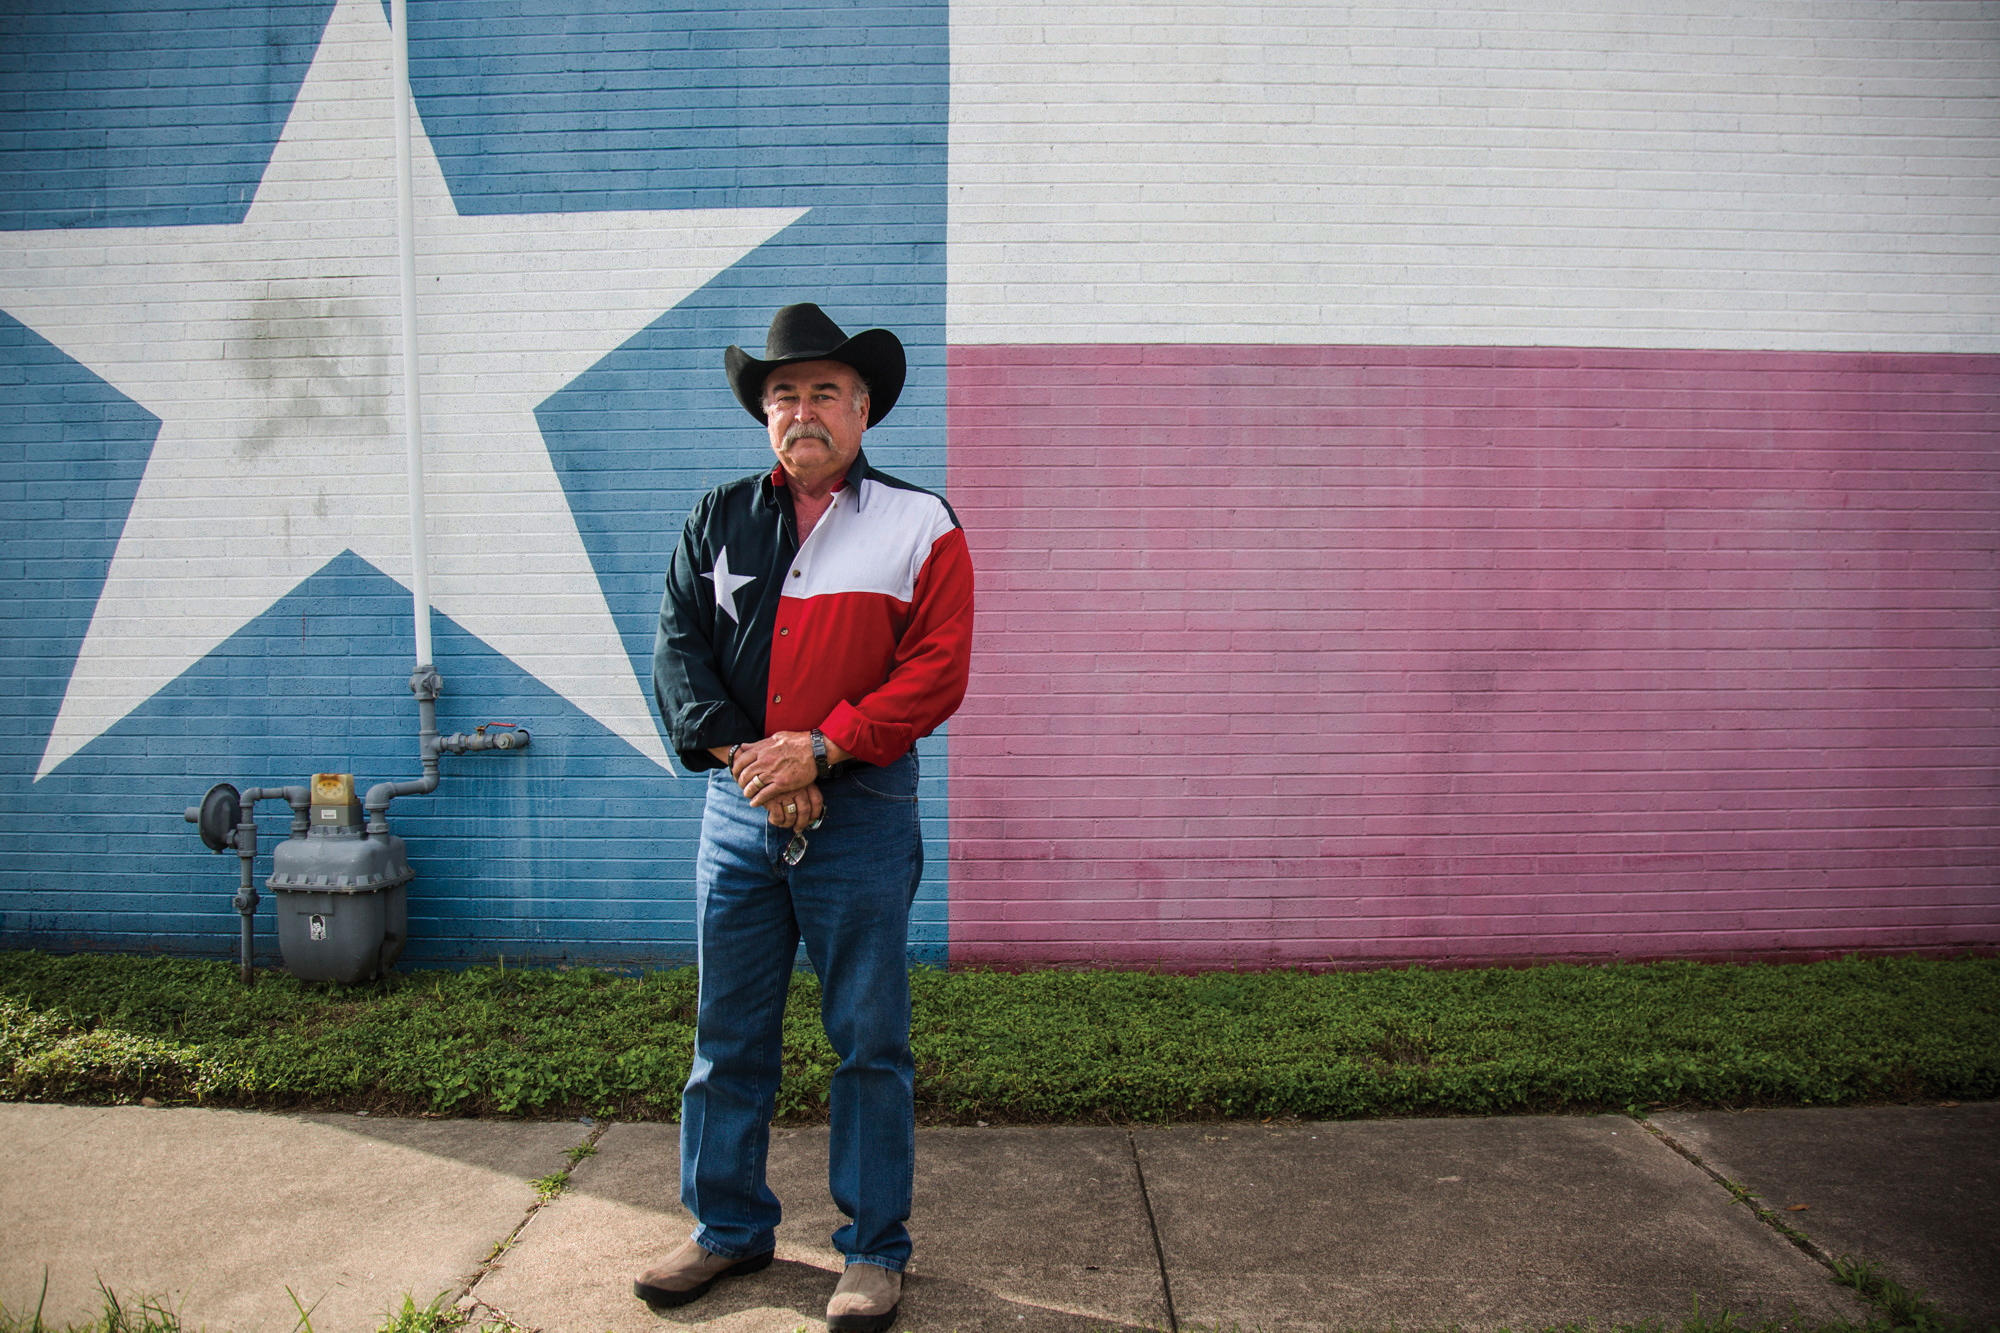 Thomas Smith, 66, stands in front of a Texas flag wall painting with a matching Texas flag shirt waiting for the start of the Veterans Day parade in Victoria, Texas on Nov. 11, 2017.